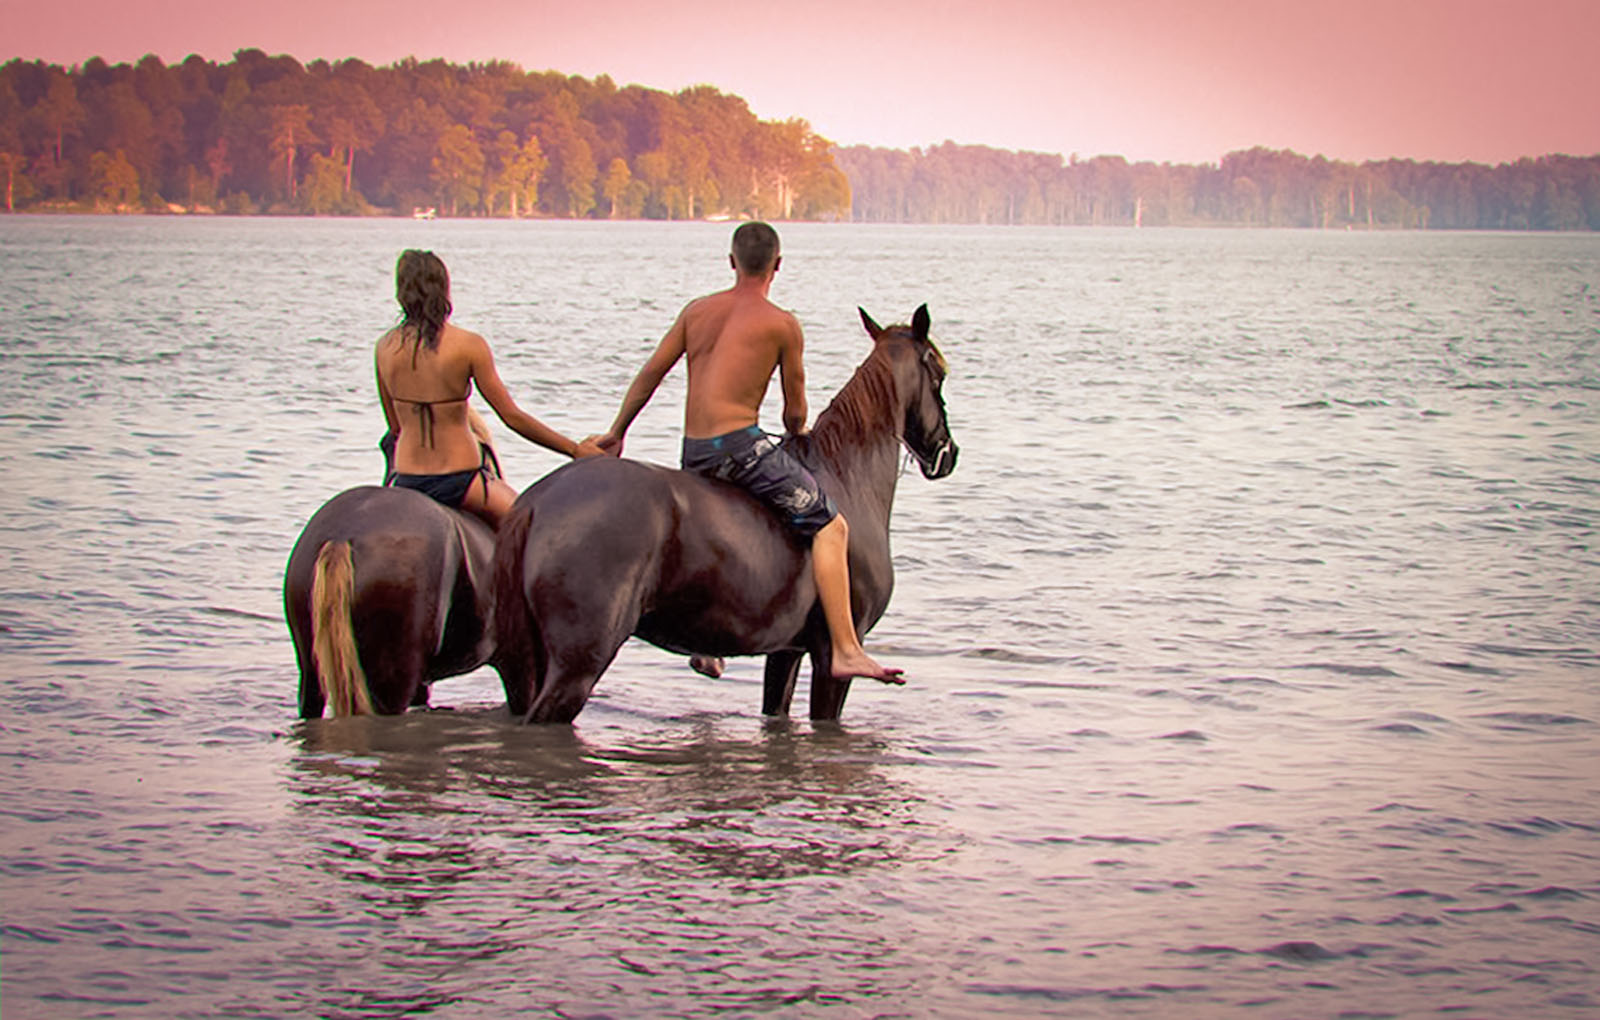 Romantic_Horseback_Moment_On_the_River-50-of-1